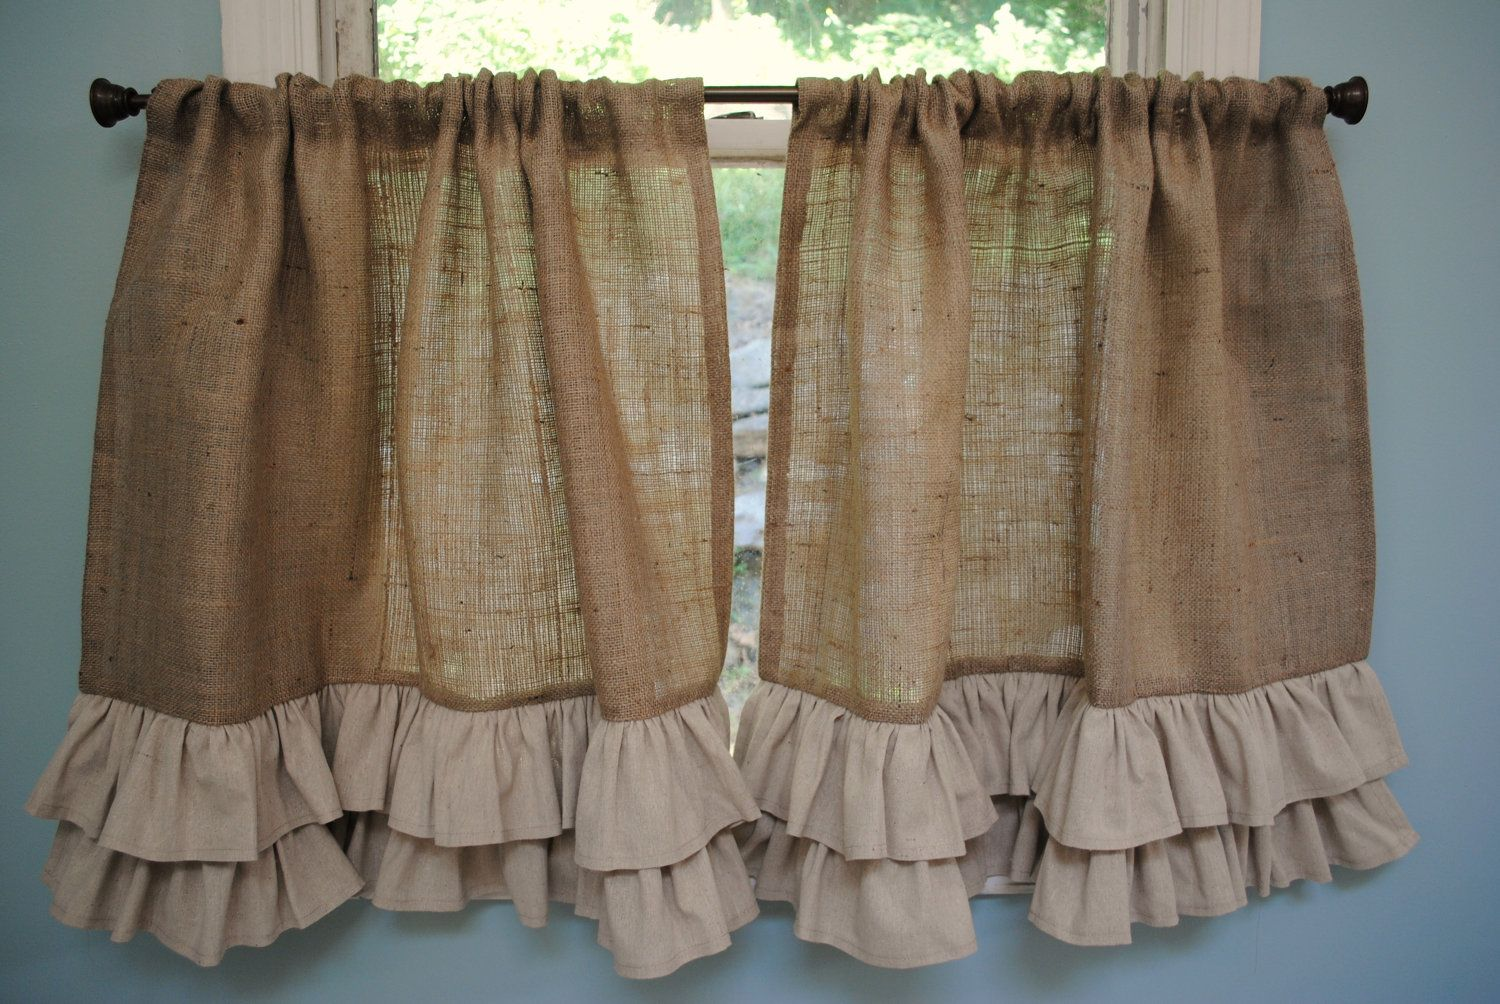 Best 25 burlap kitchen curtains ideas on pinterest for Kitchen valance ideas pinterest